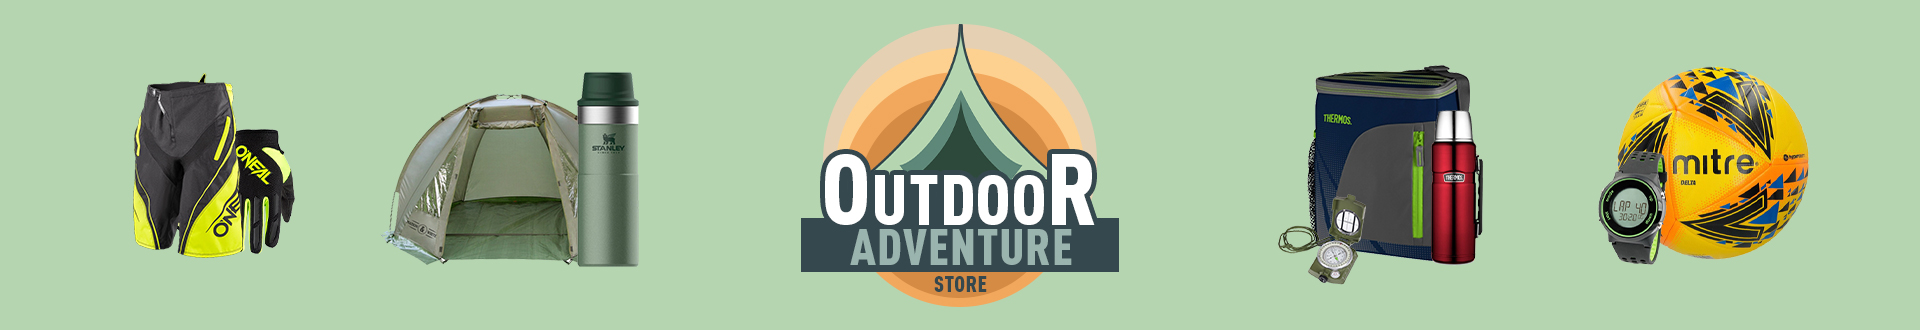 Get outside & go explore with in our outdoor adventure store you'll find everything you need to take on the outdoors!